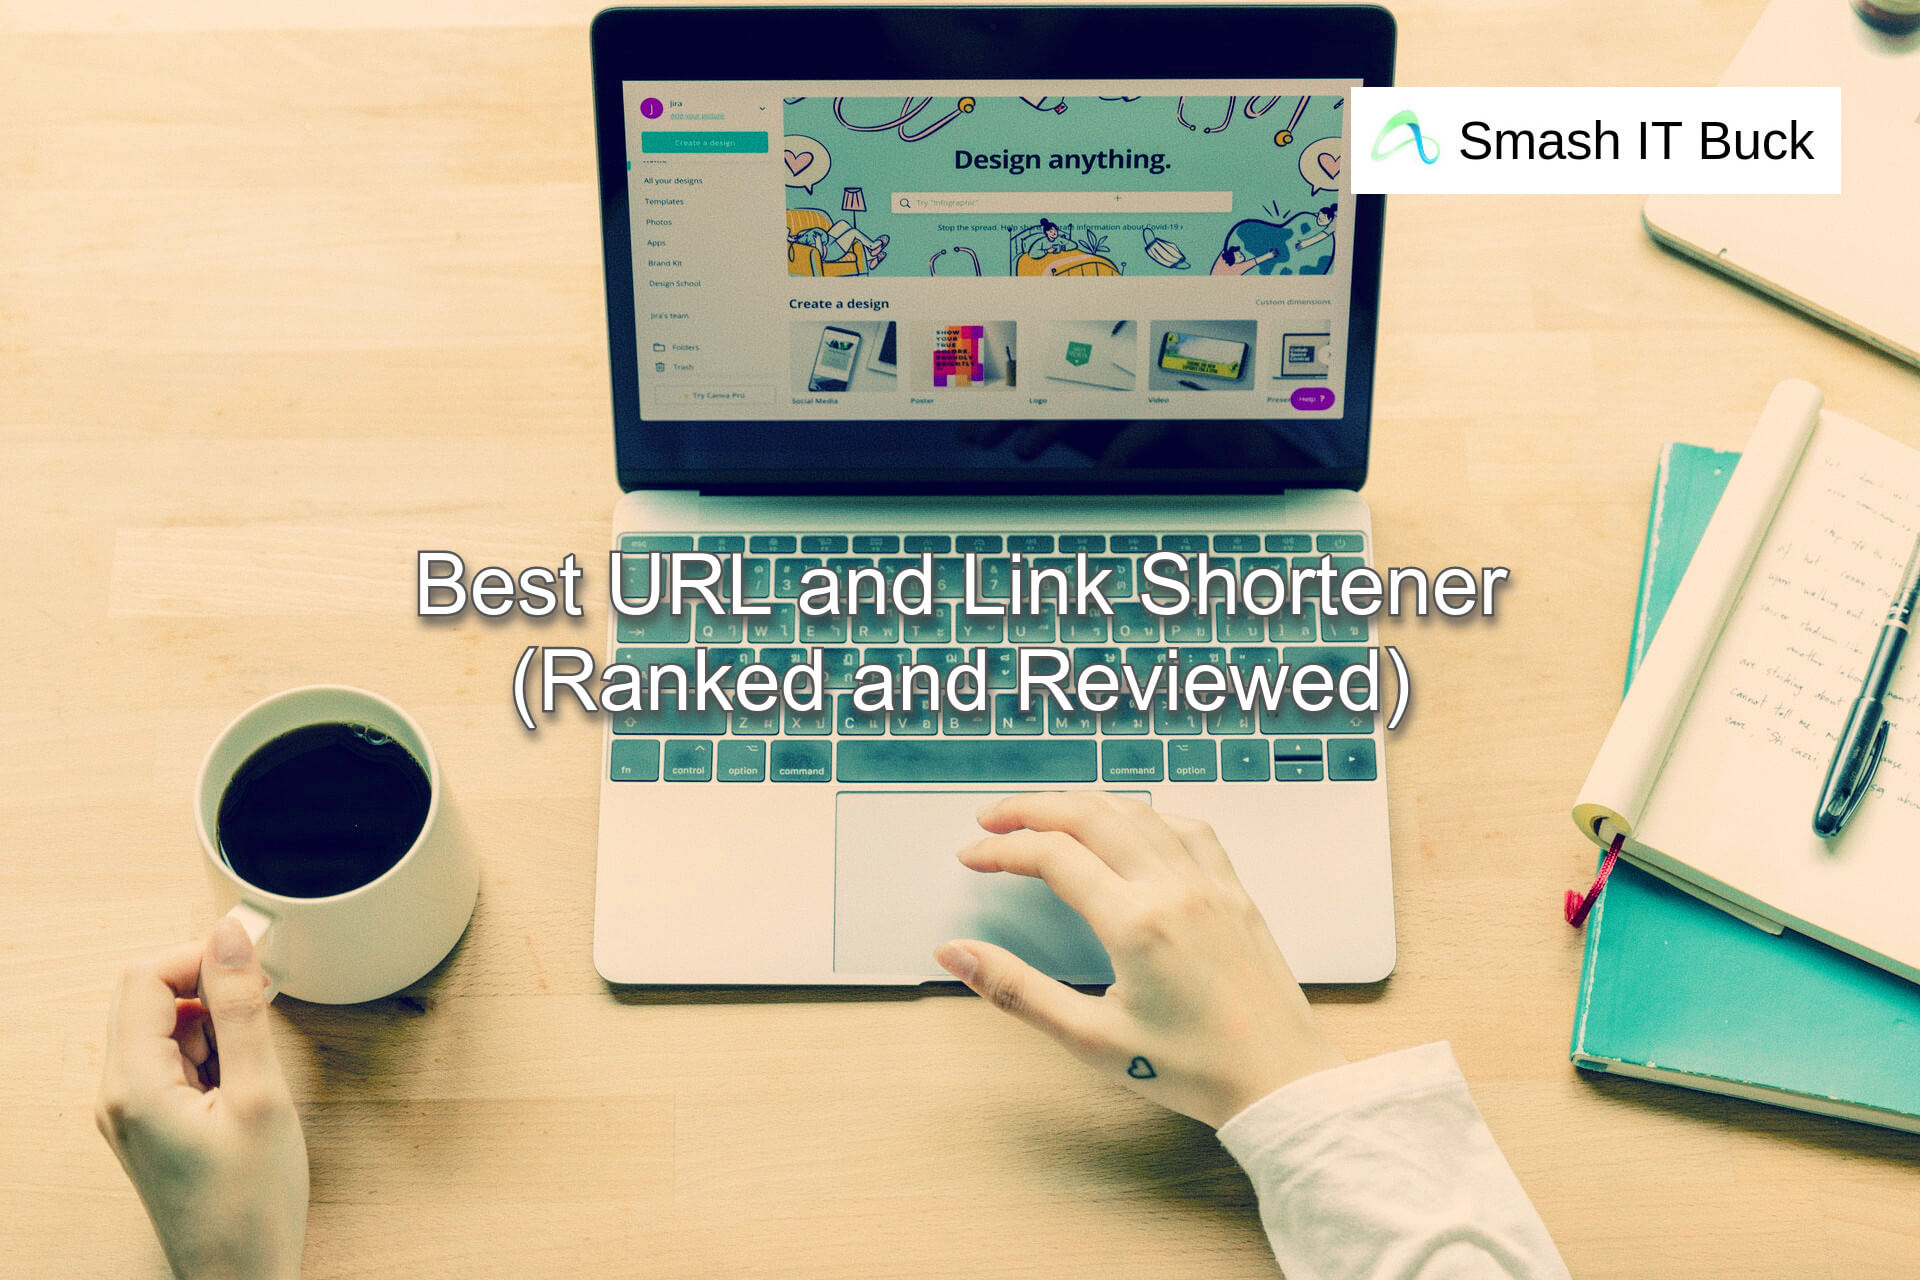 Best URL and Link Shorteners to use in 2021